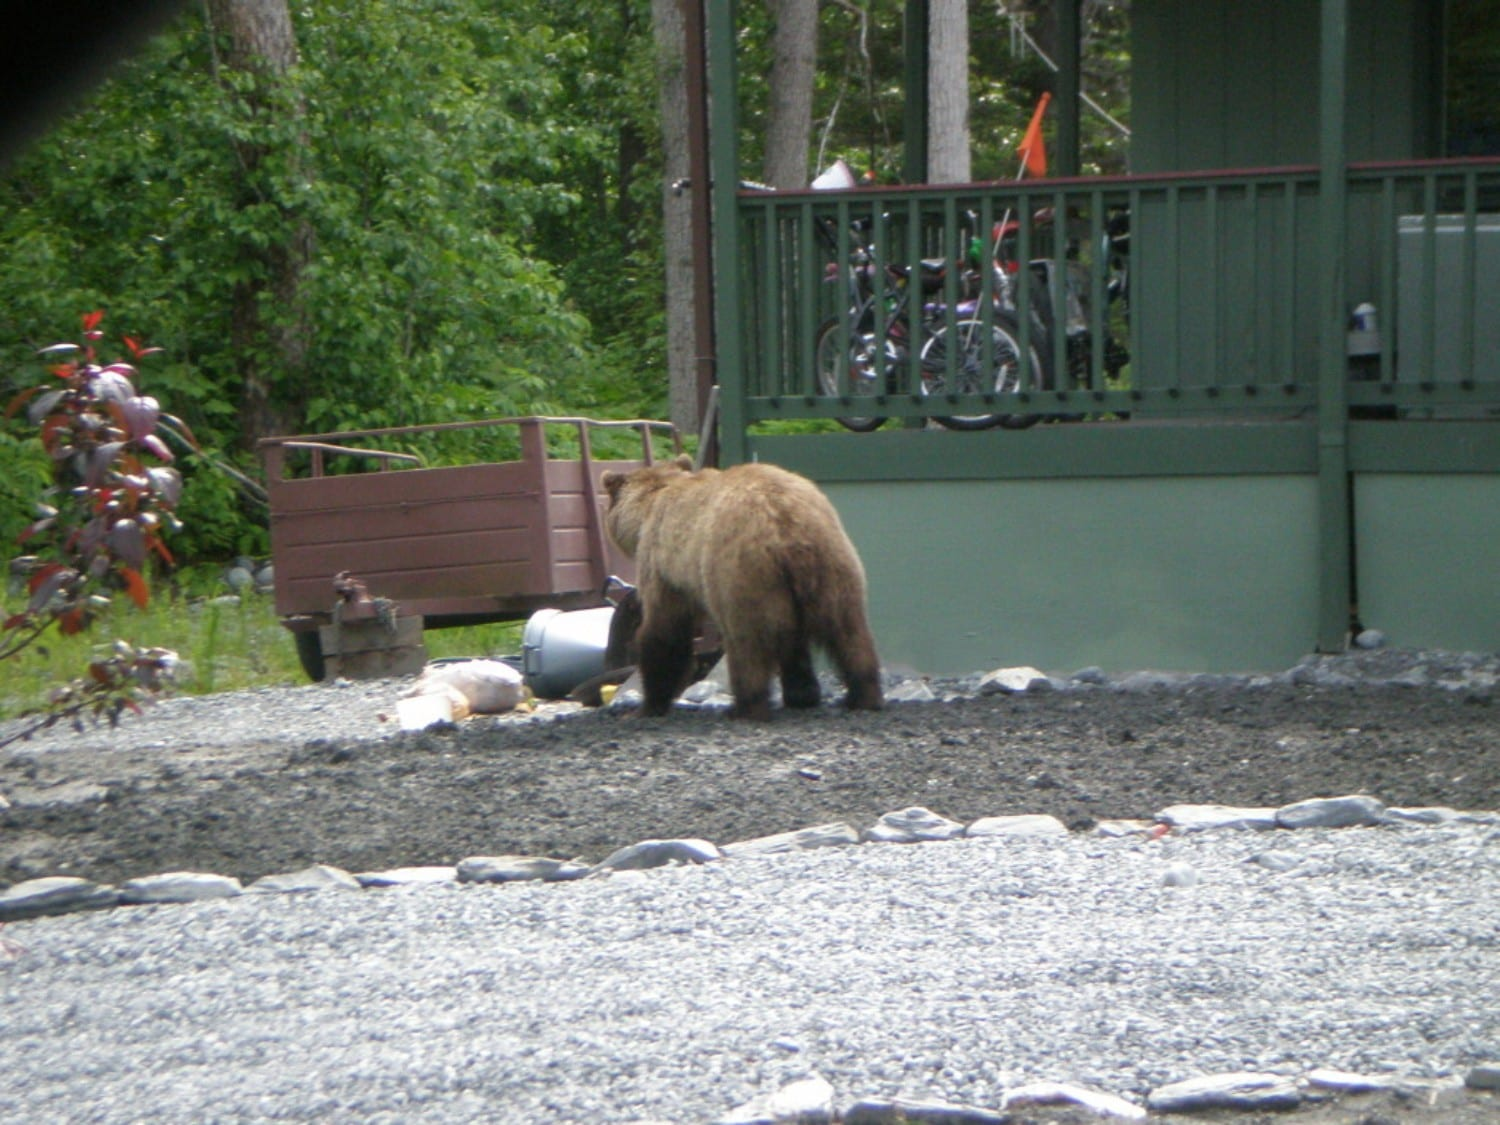 Bears and people: Neighbors on their best behavior? -The